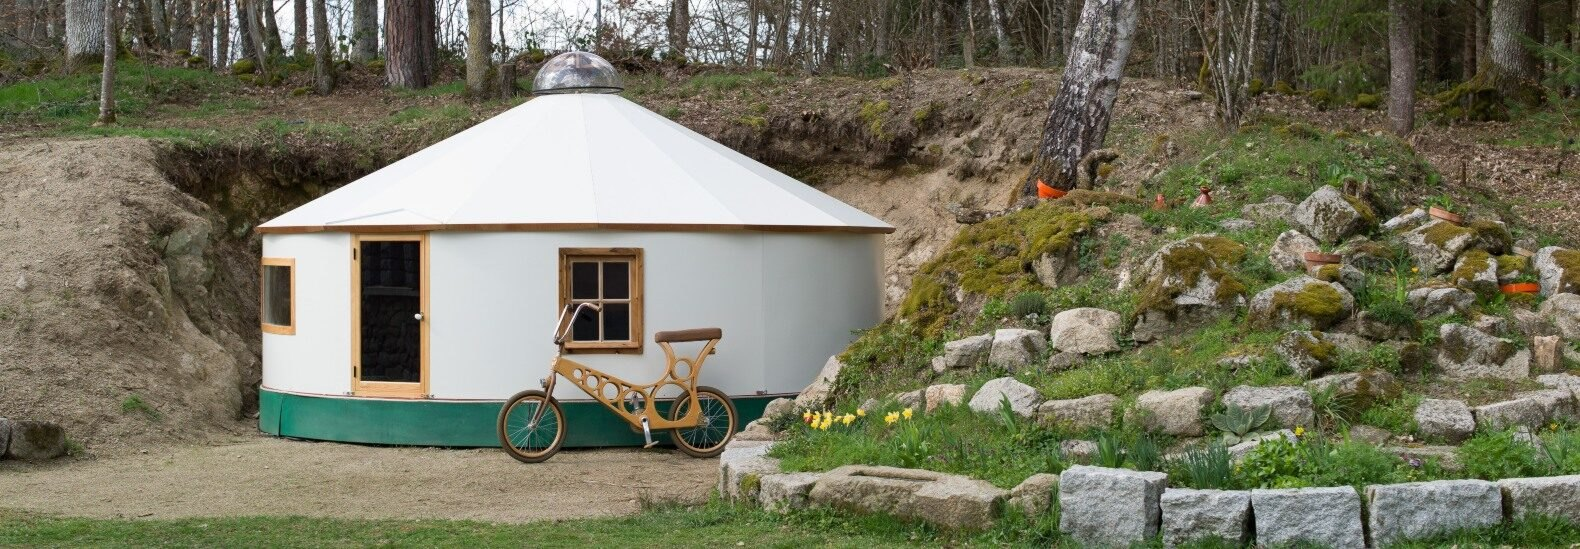 Diy Yurt Could Be The Answer For True Social Distancing Yurt meaning, definition, usage, etymology, pronunciation, examples, parts of speech, derived terms, inflections collated together for your perusal. diy yurt could be the answer for true